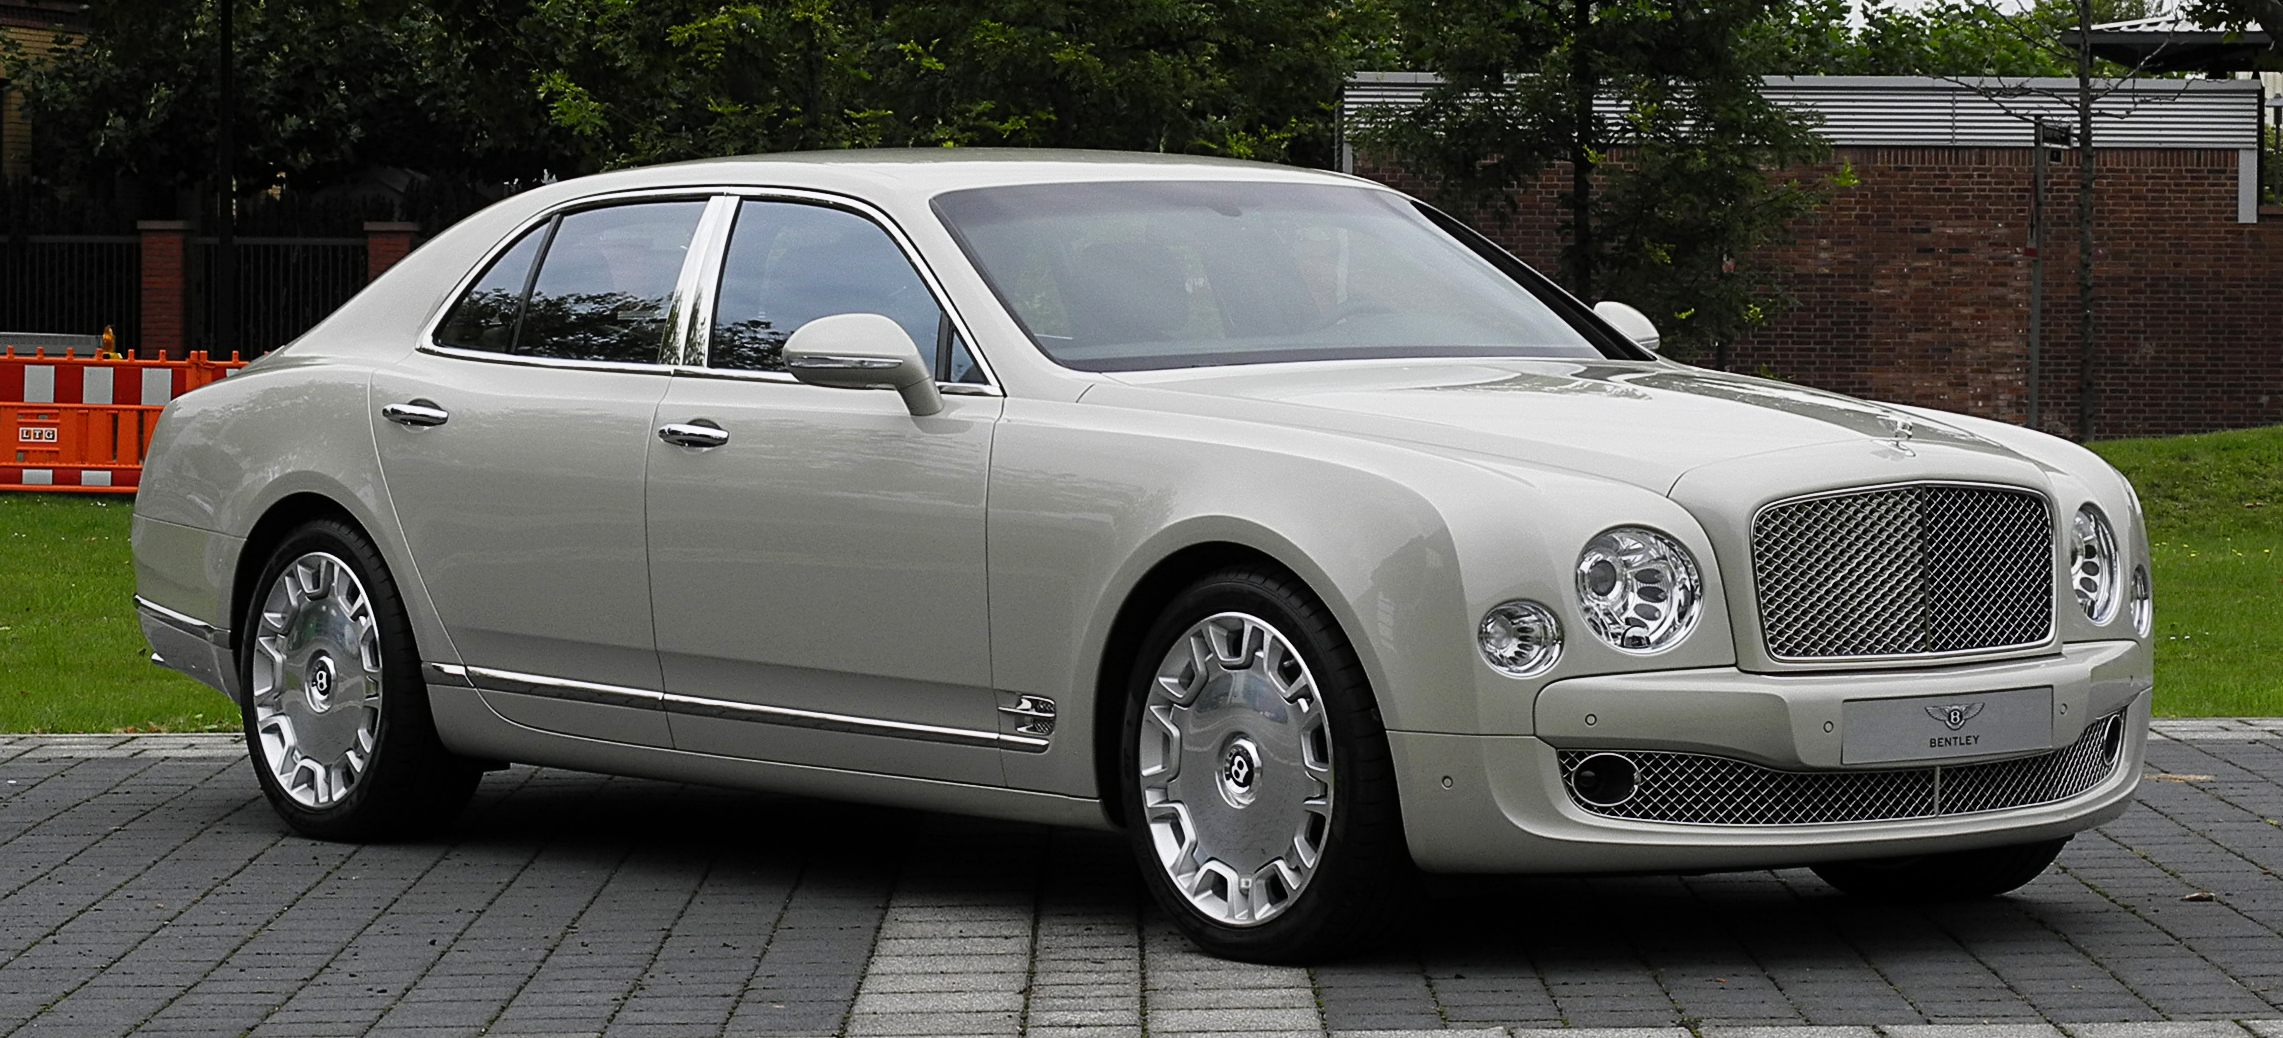 File Bentley Mulsanne Frontansicht 1 30 August 2011